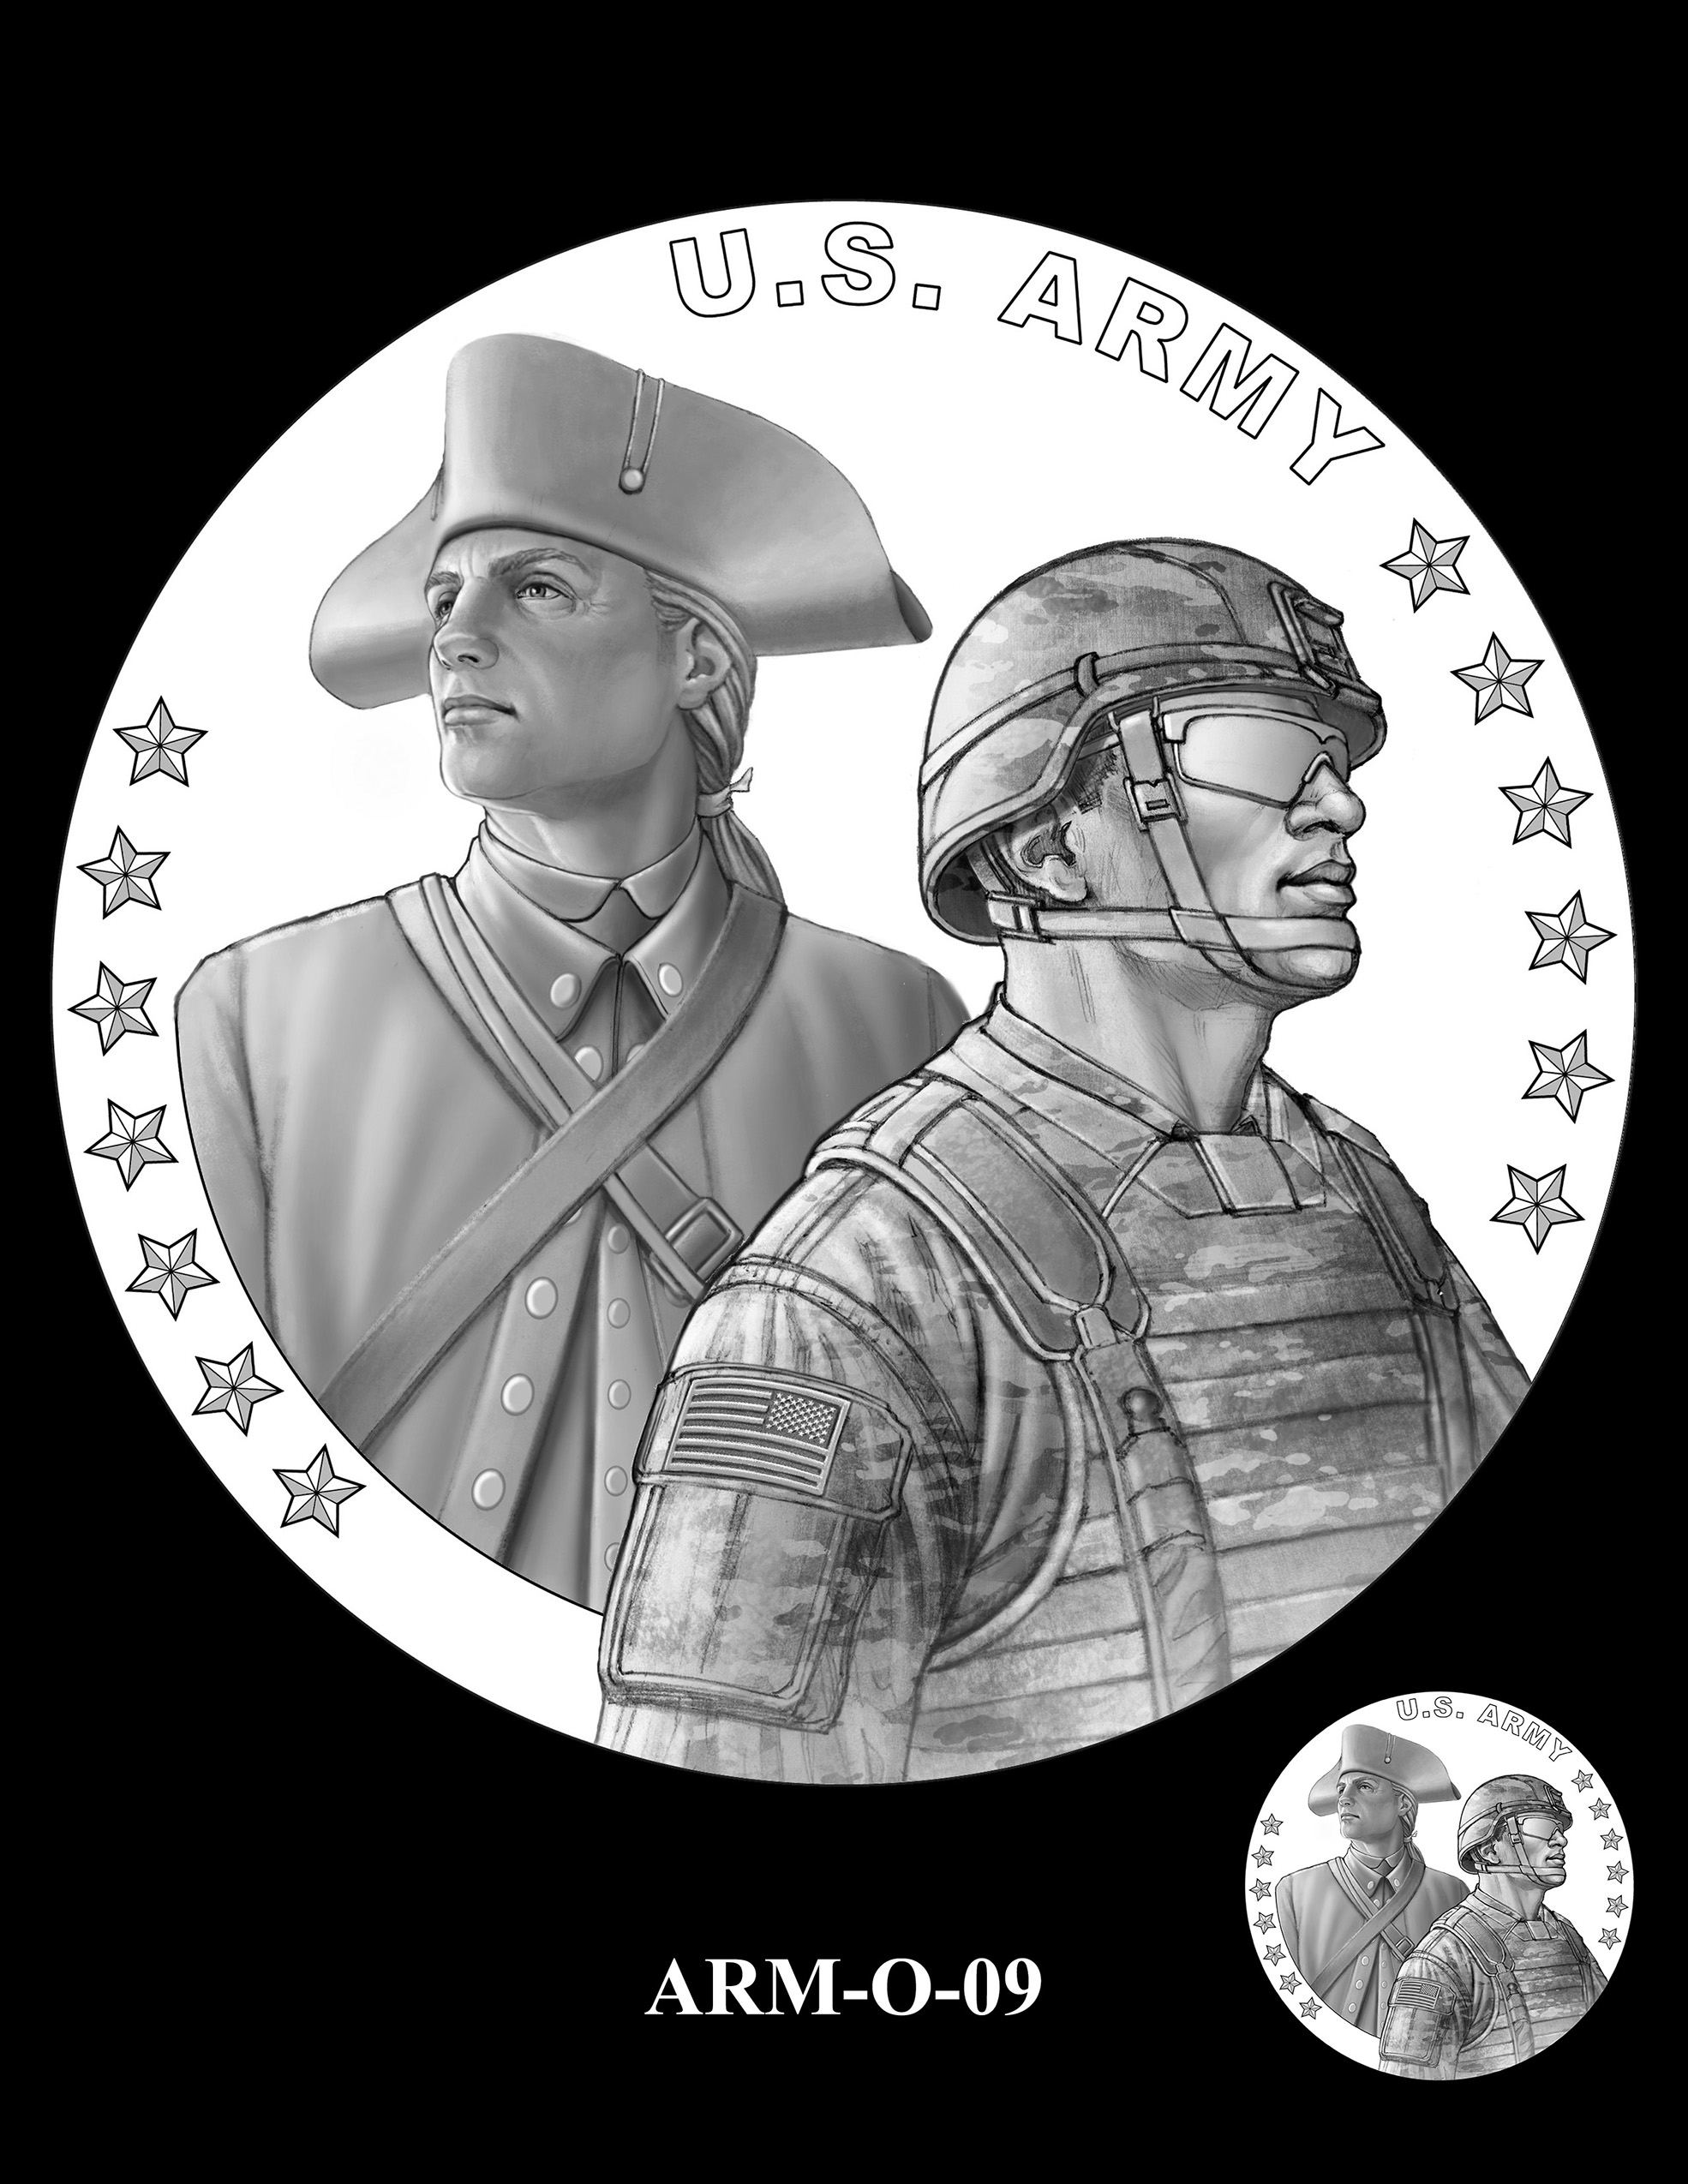 ARM-O-09 -- United States Army Silver Medal